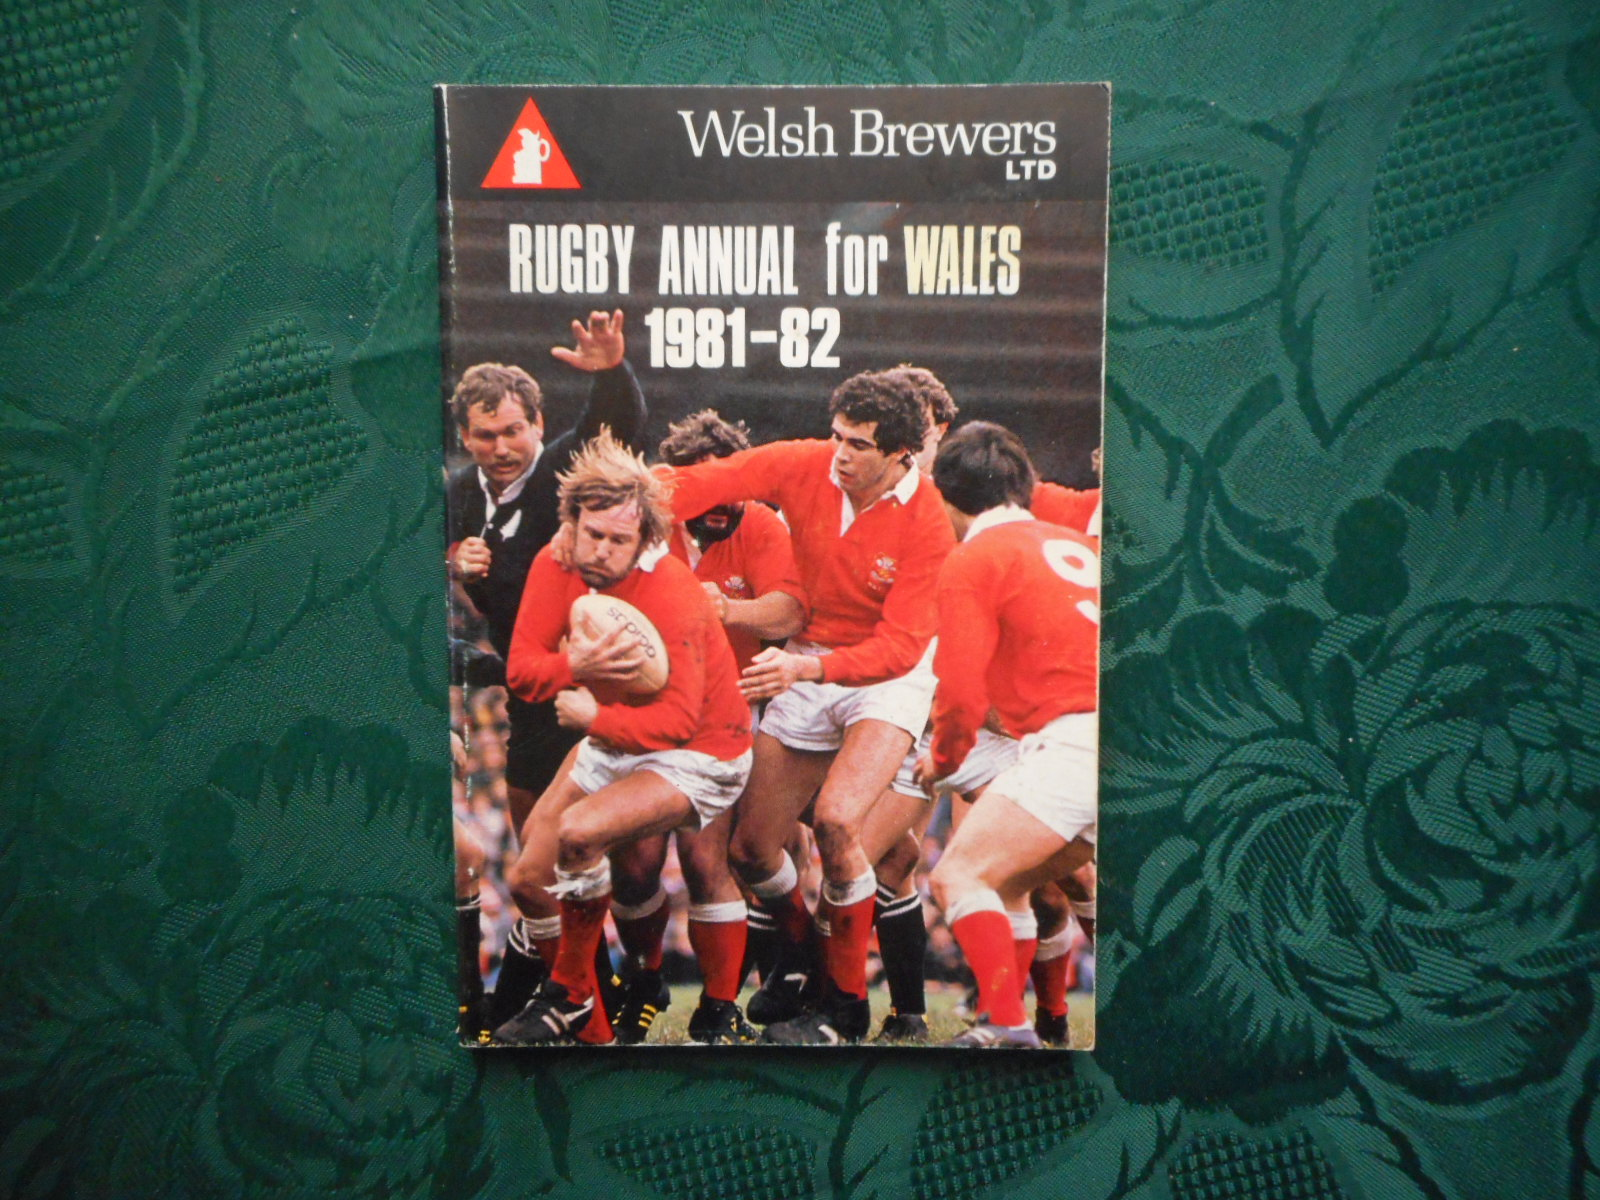 Image for Rugby Annual for Wales 1981-82 (Welsh Brewers)  WRU Centenary Review